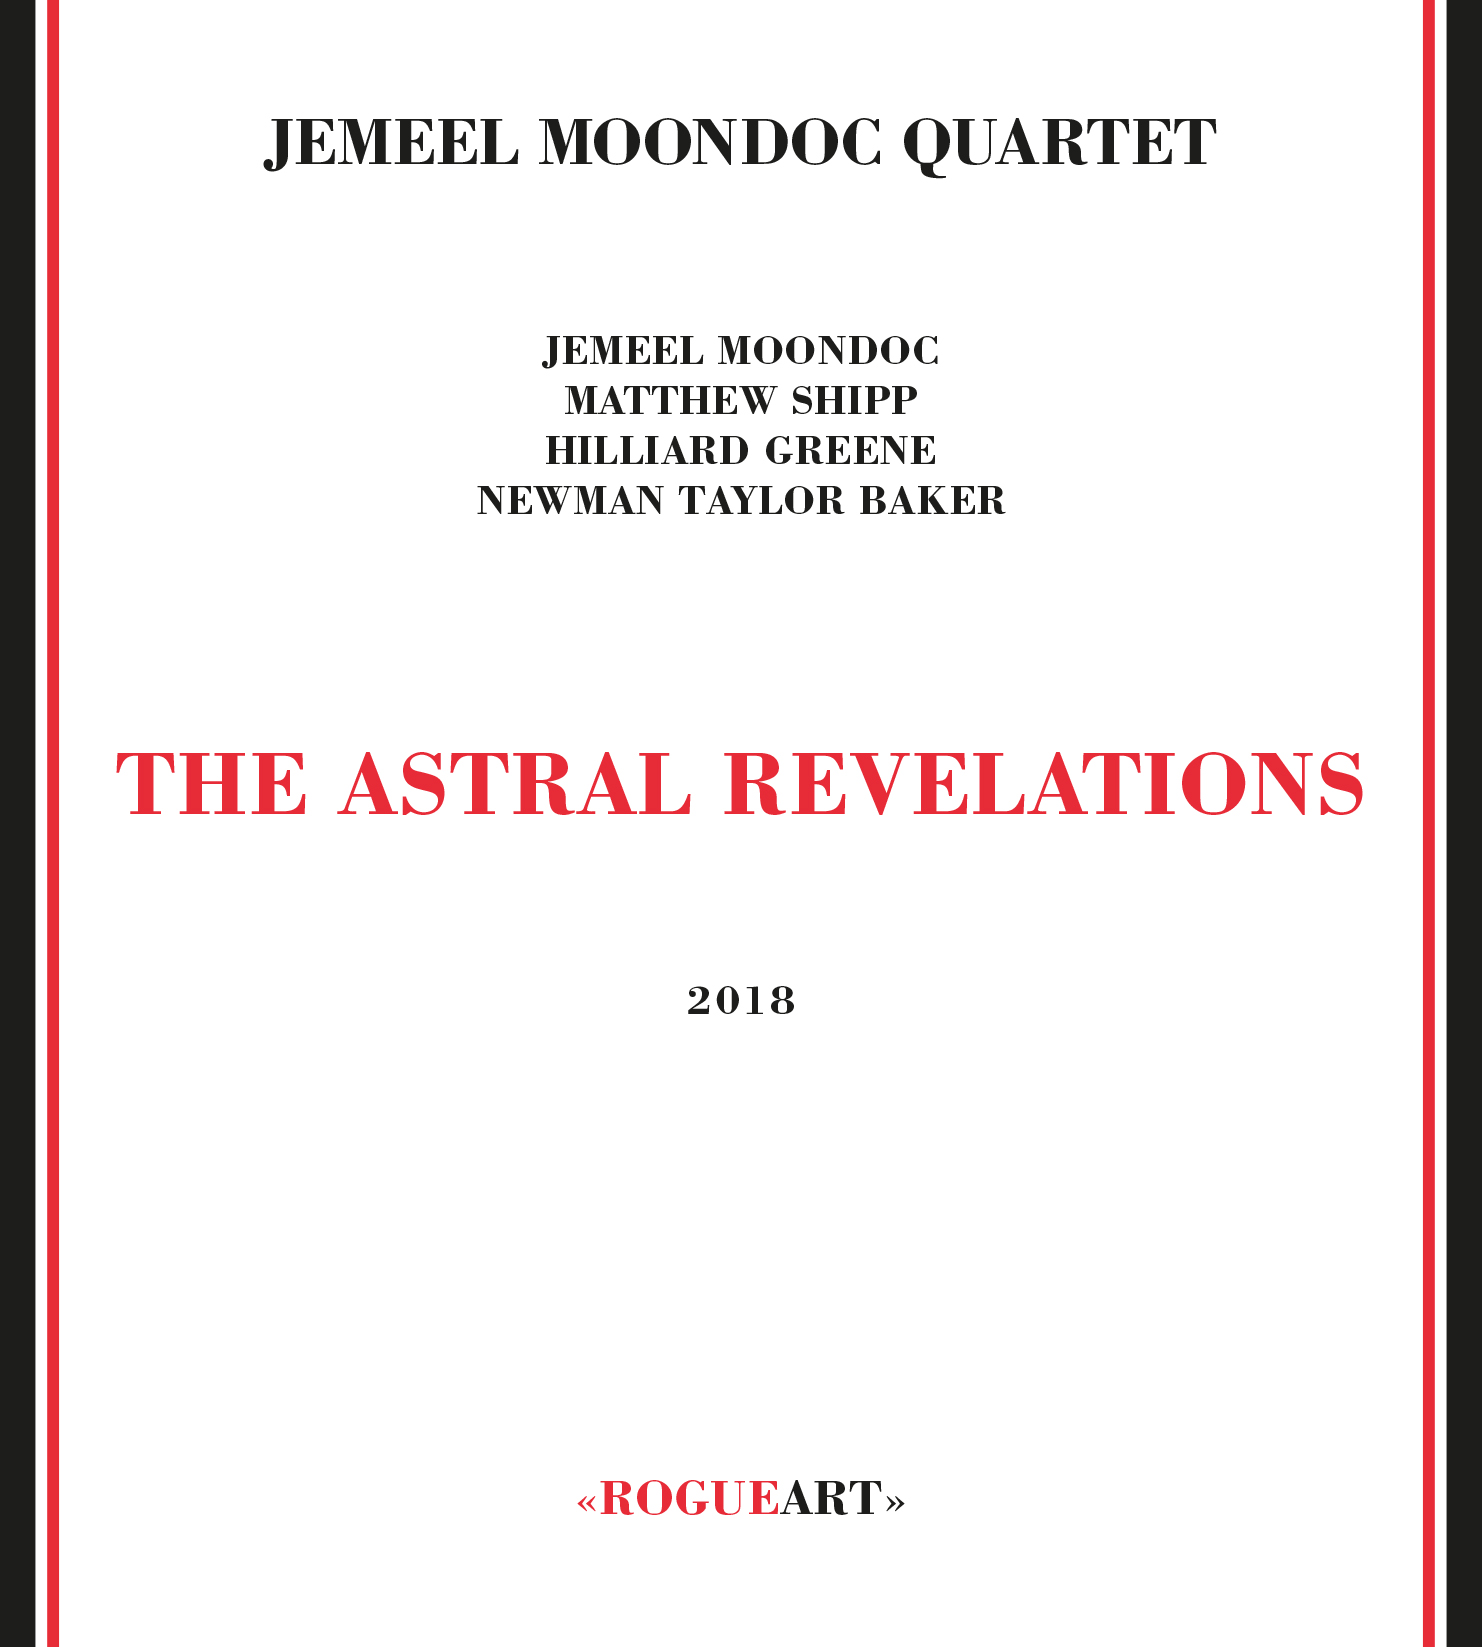 Front cover of the album THE ASTRAL REVELATIONS